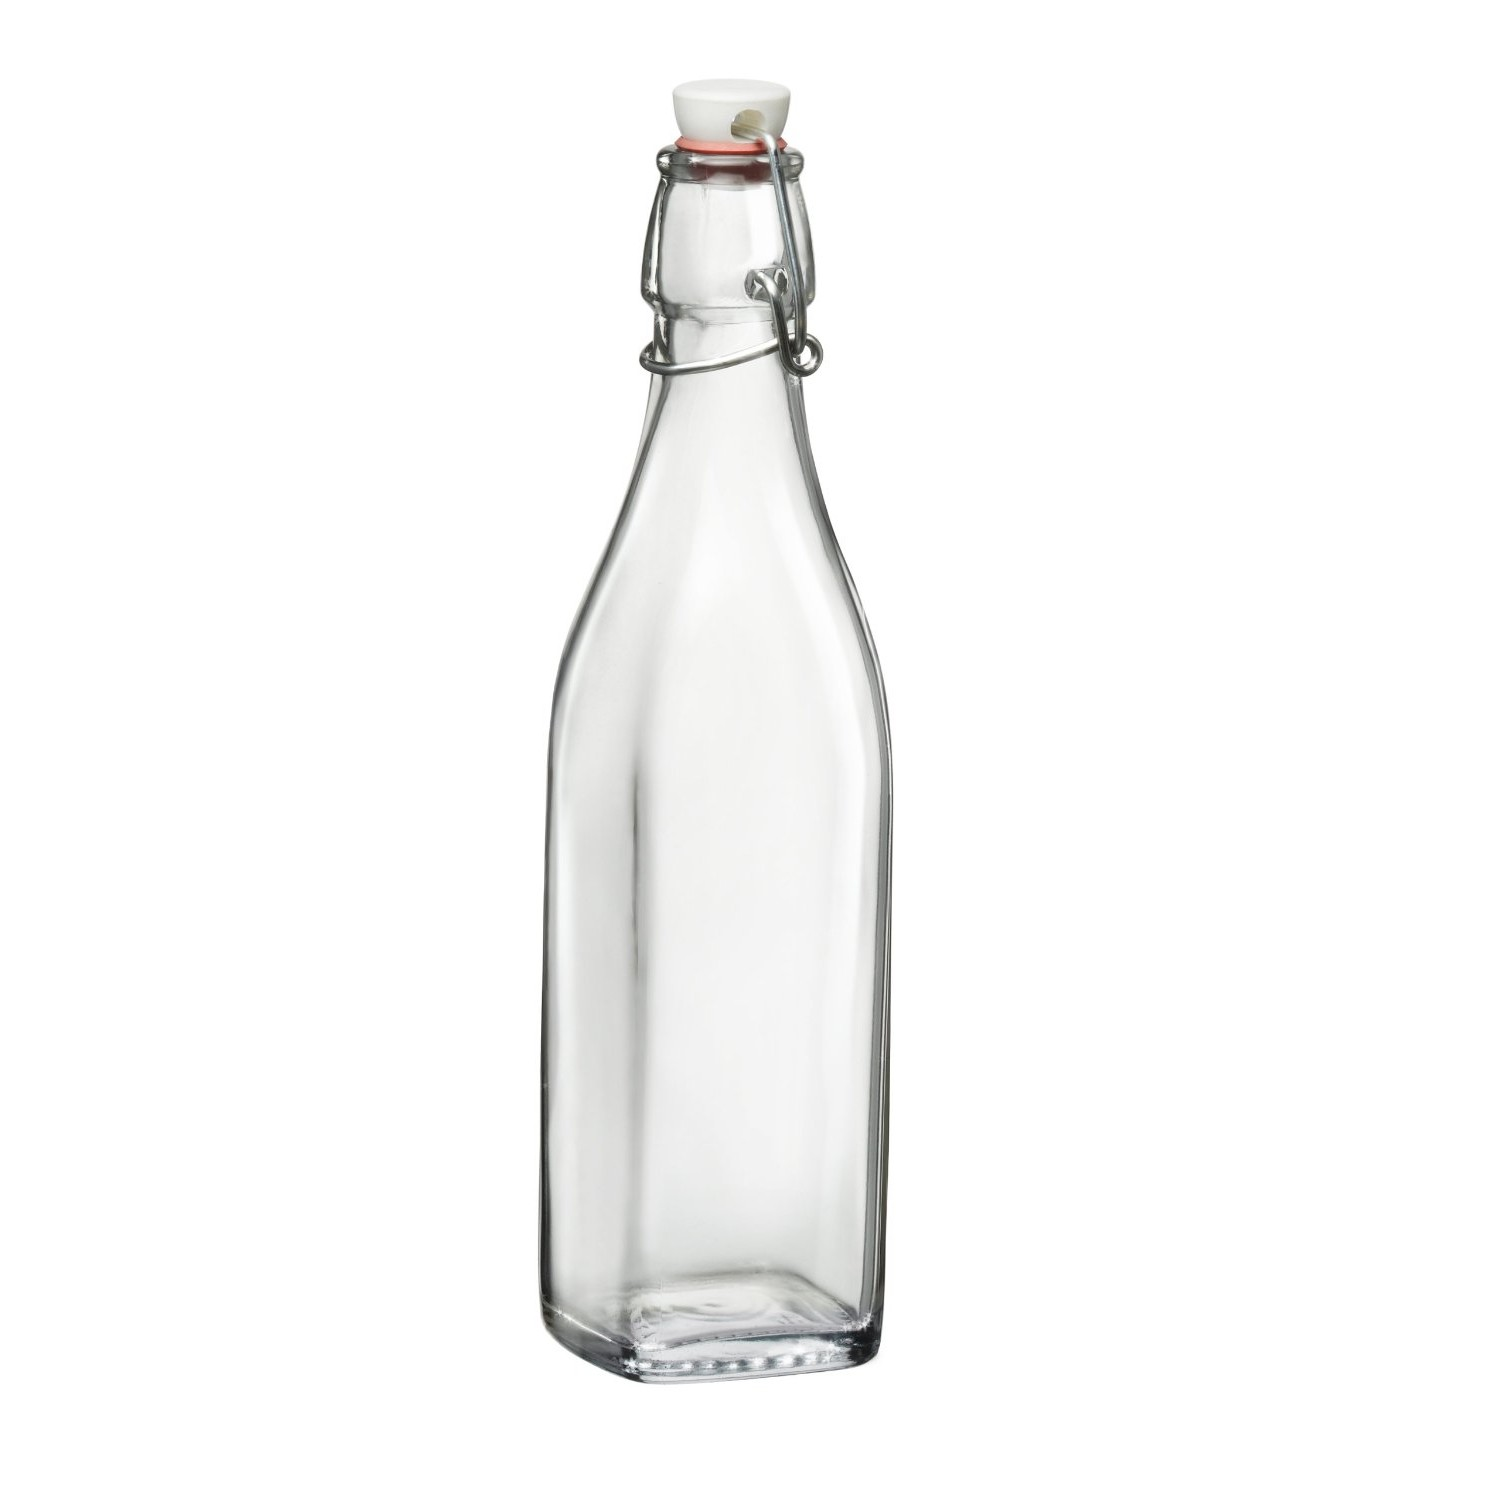 Bormioli Rocco Swing Top Glass Bottles - Multiple Size Available - Bottle HD PNG